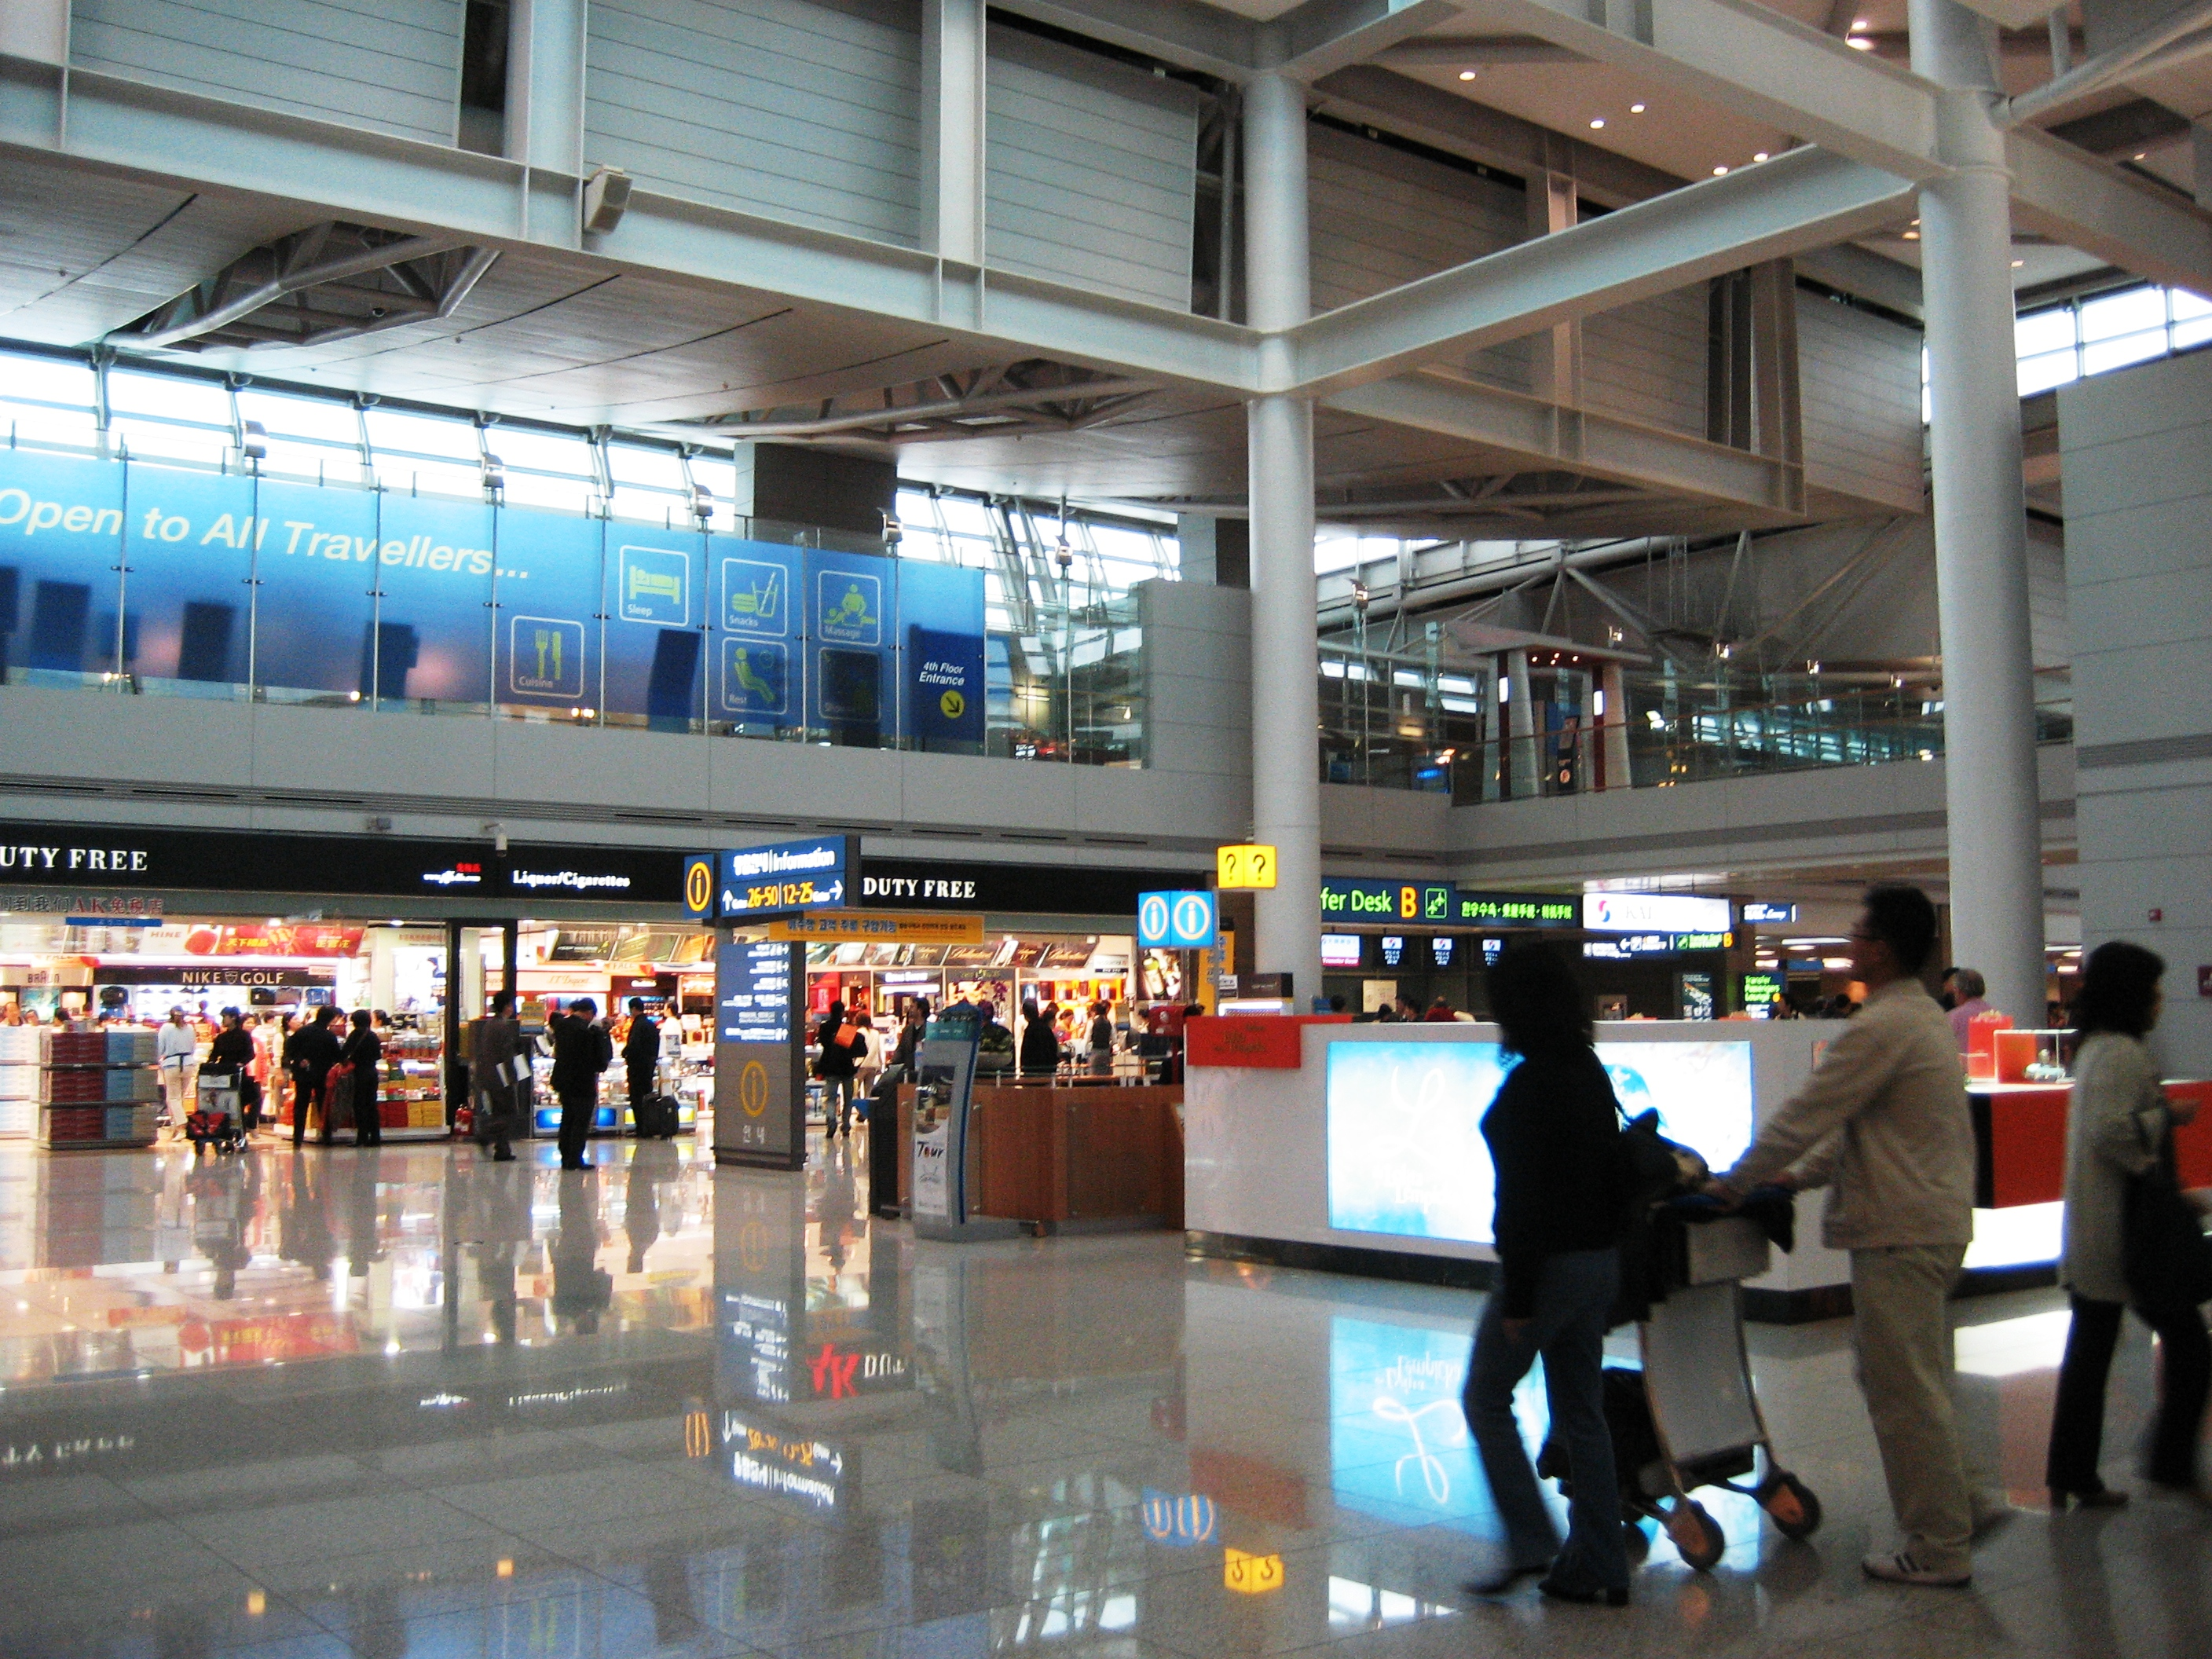 File:Korea-Incheon-International-Airport-Boarding-lobby-Duty-